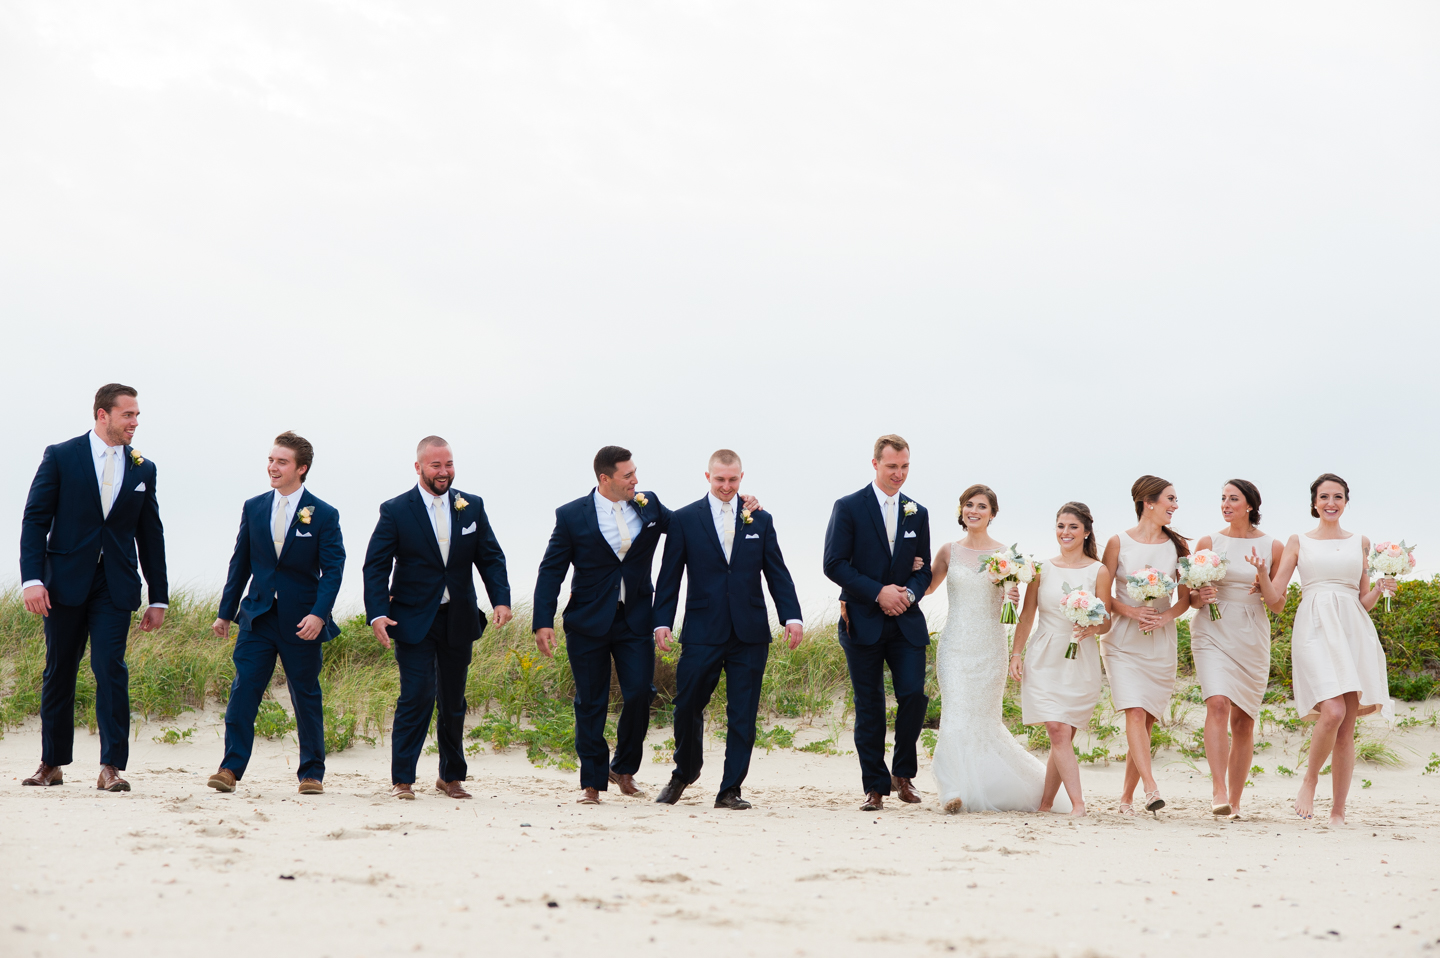 fun wedding party walks through the sand on the beach laughing